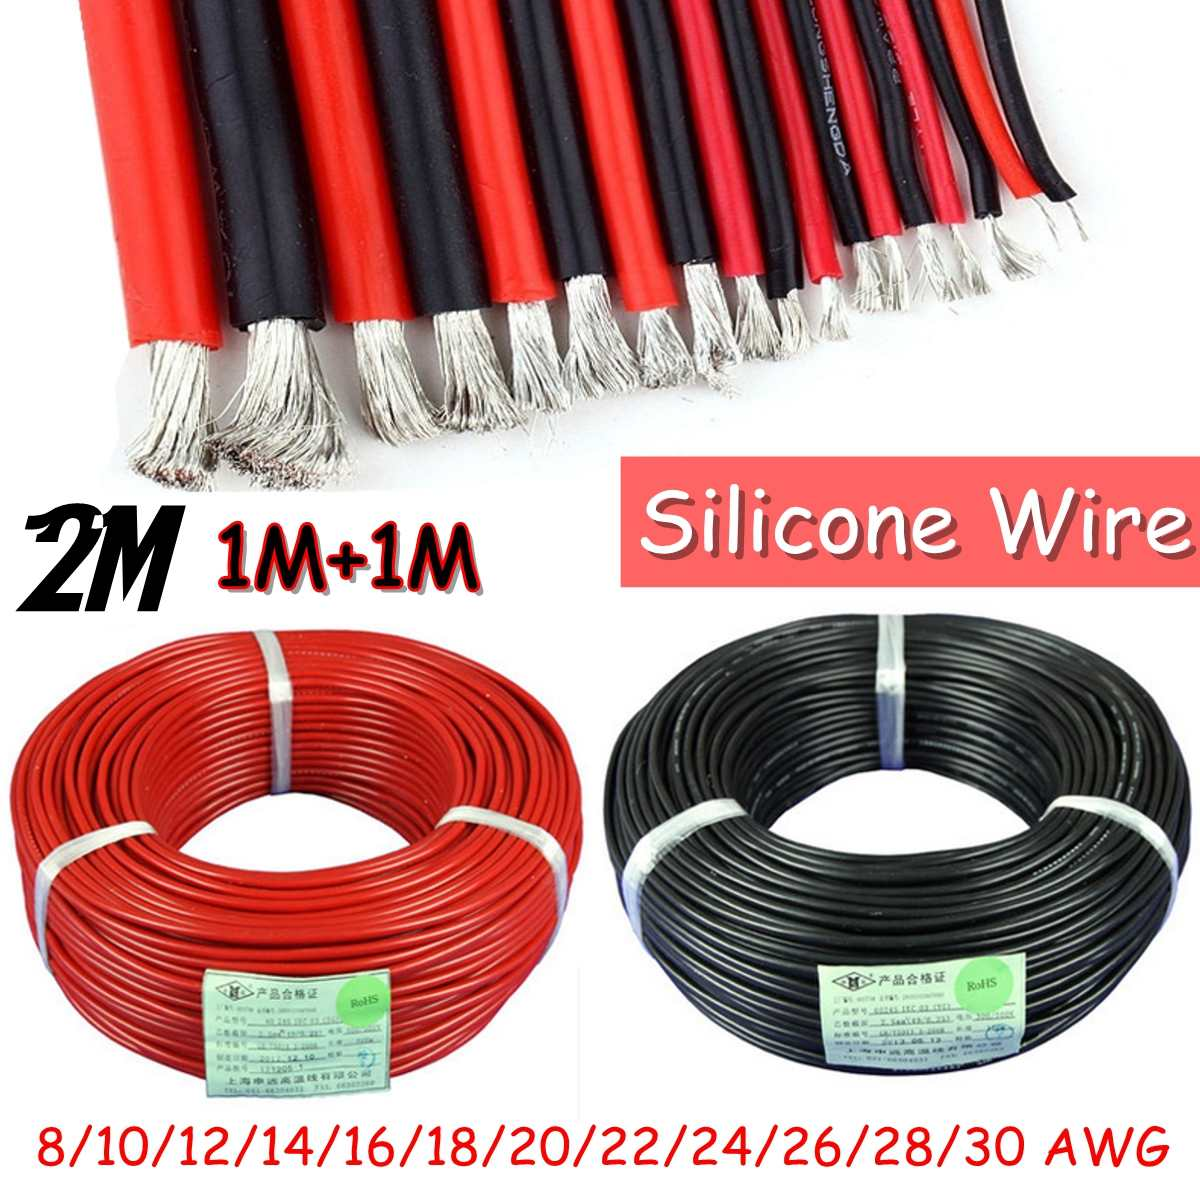 1M Silicone Wire 8/10/12/14/16/18/20/22/24/26 AWG Black Red Heatproof Soft Silicone Silica Gel Cable SR Wire Flexible Stranded(China)